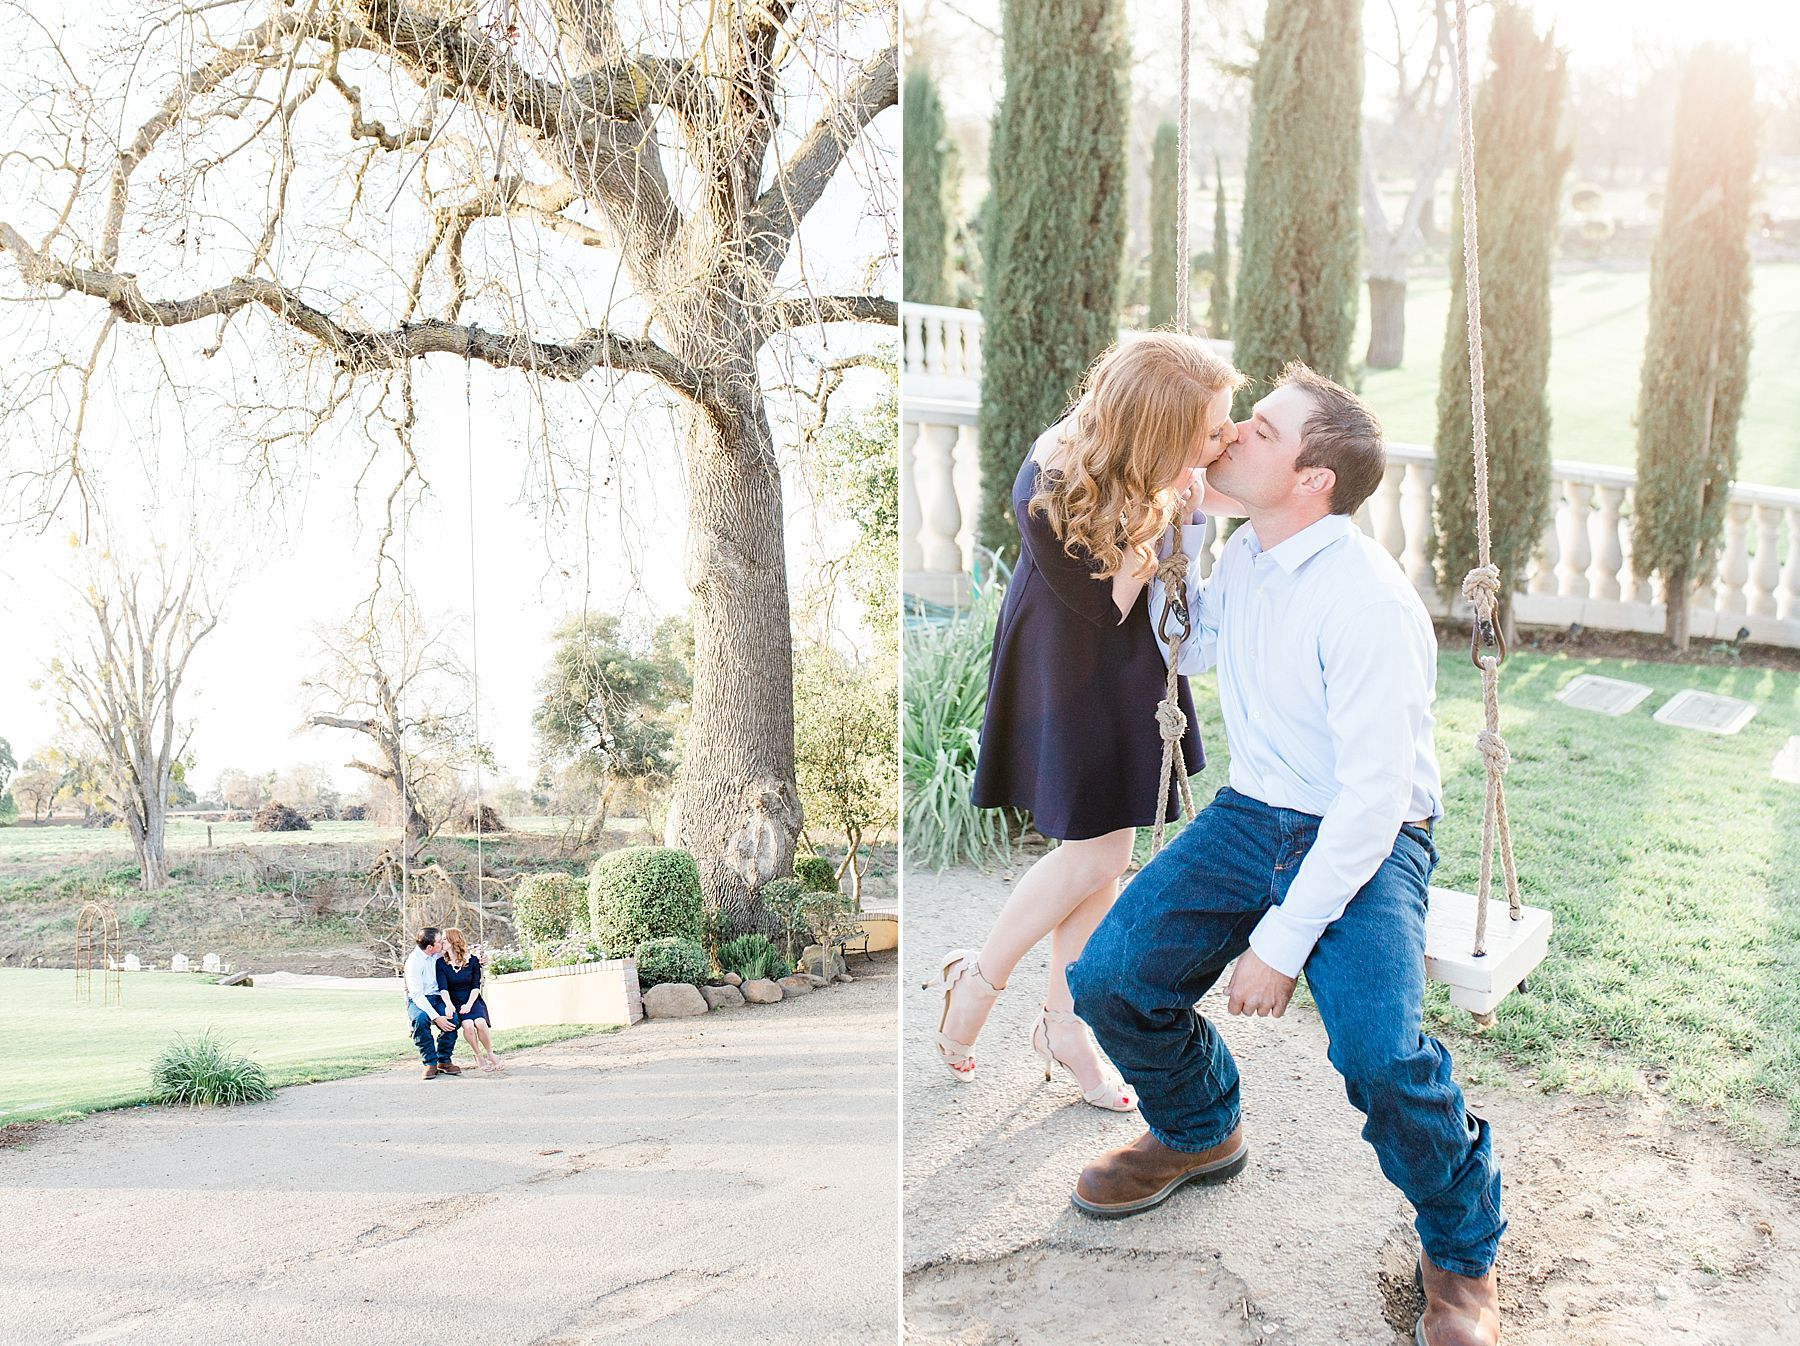 Viaggio Winery Engagement Session - Liz and TJ - Lodi Winery Wedding Photographer_0016.jpg